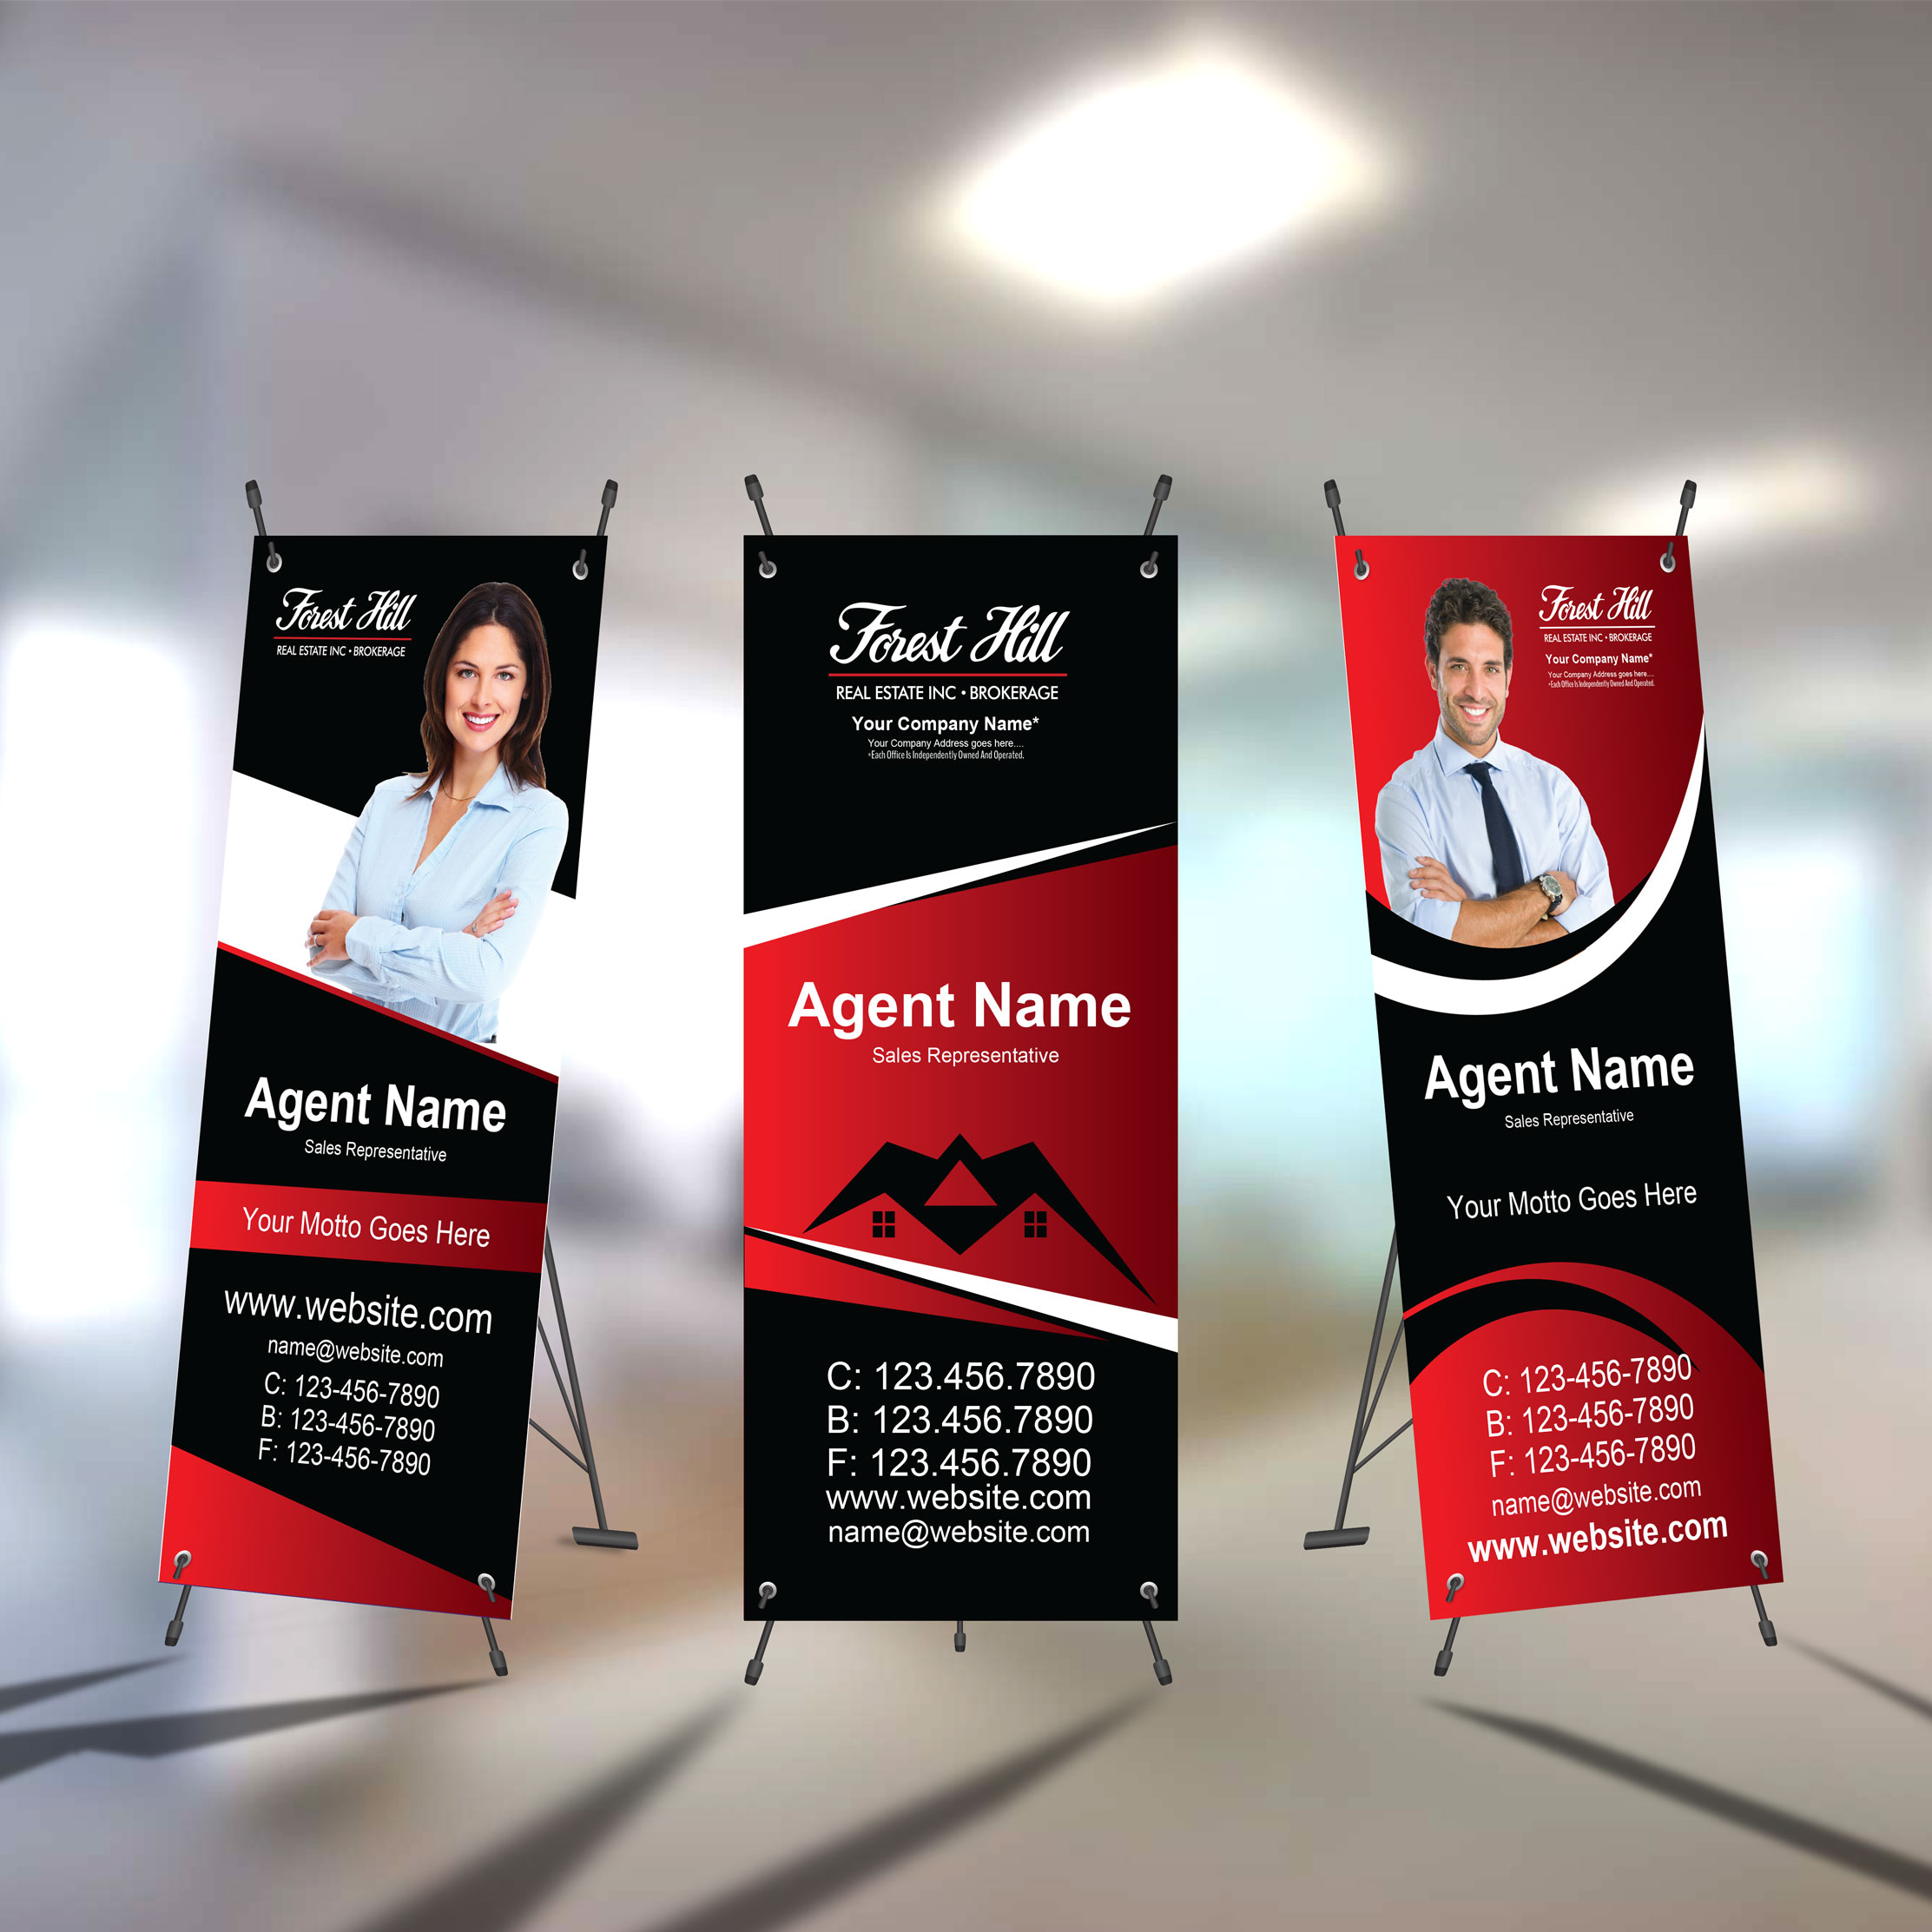 X-Frame Banners<br><br> - Forest Hill